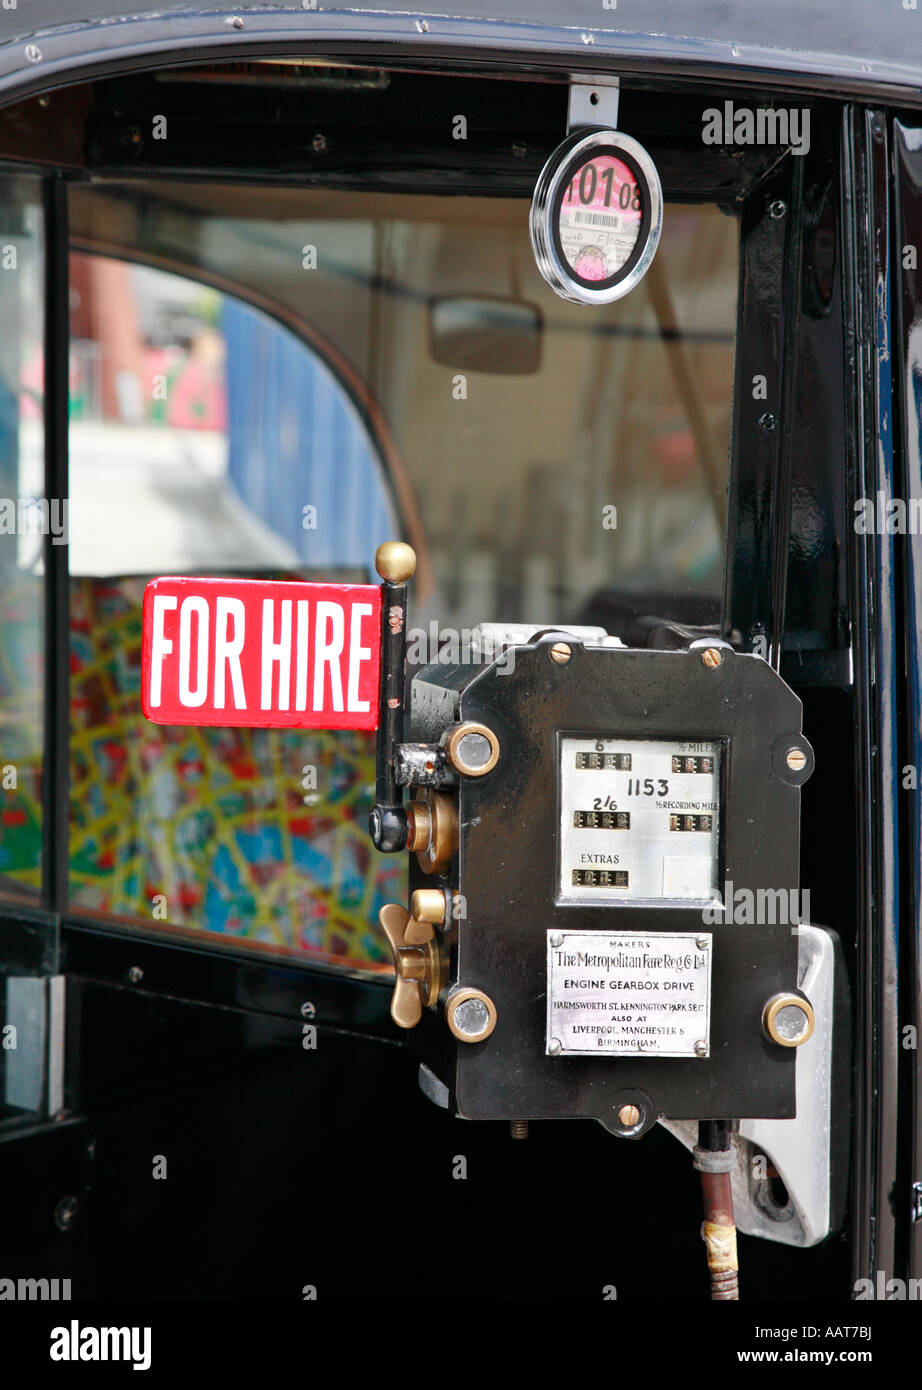 Fare meter on an old London taxi cab For Hire - Stock Image